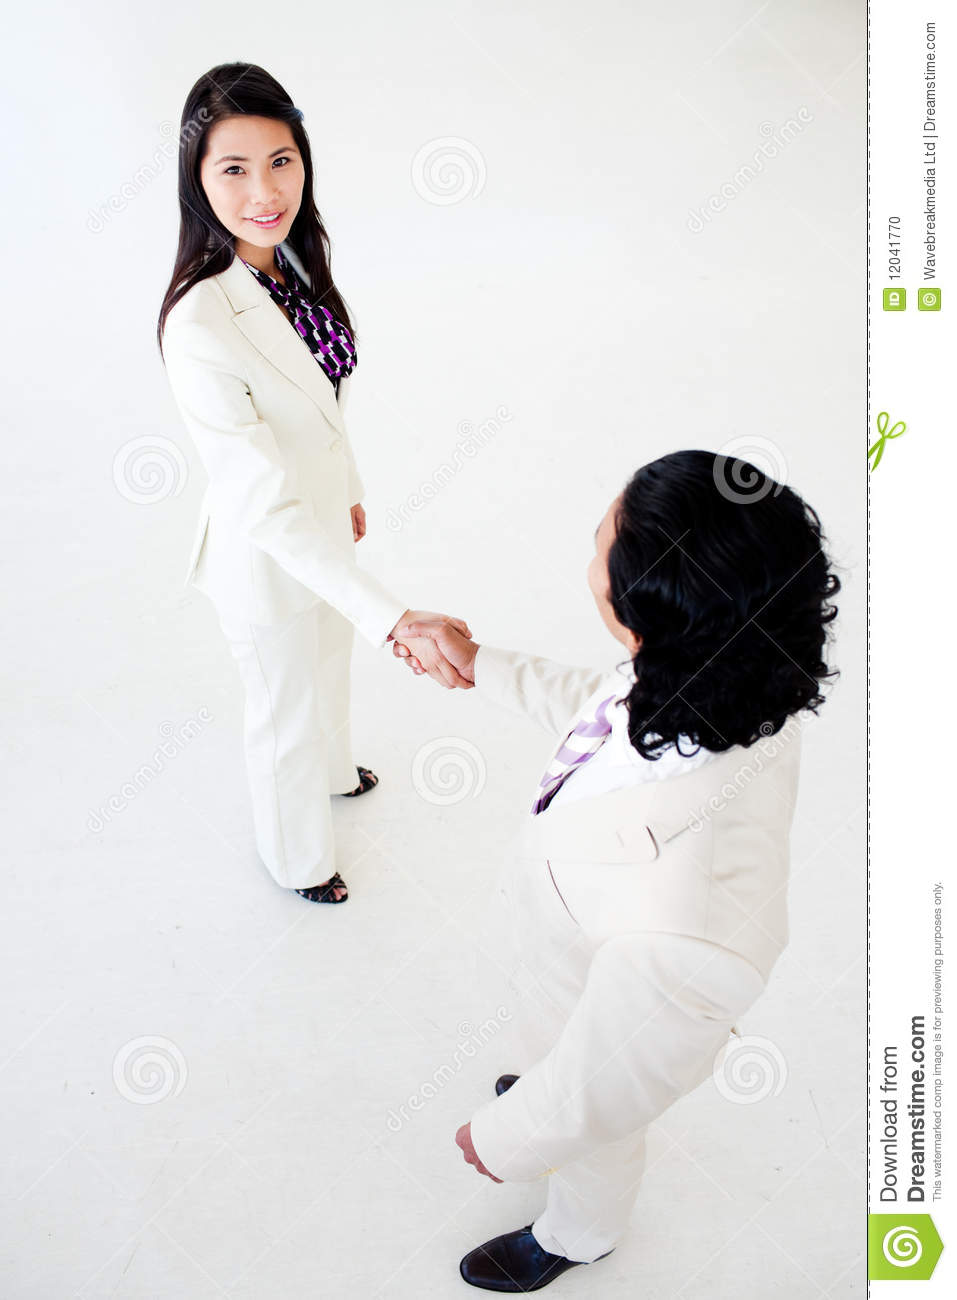 A Diverse Business People Greeting Each Other Stock Photo 12041770